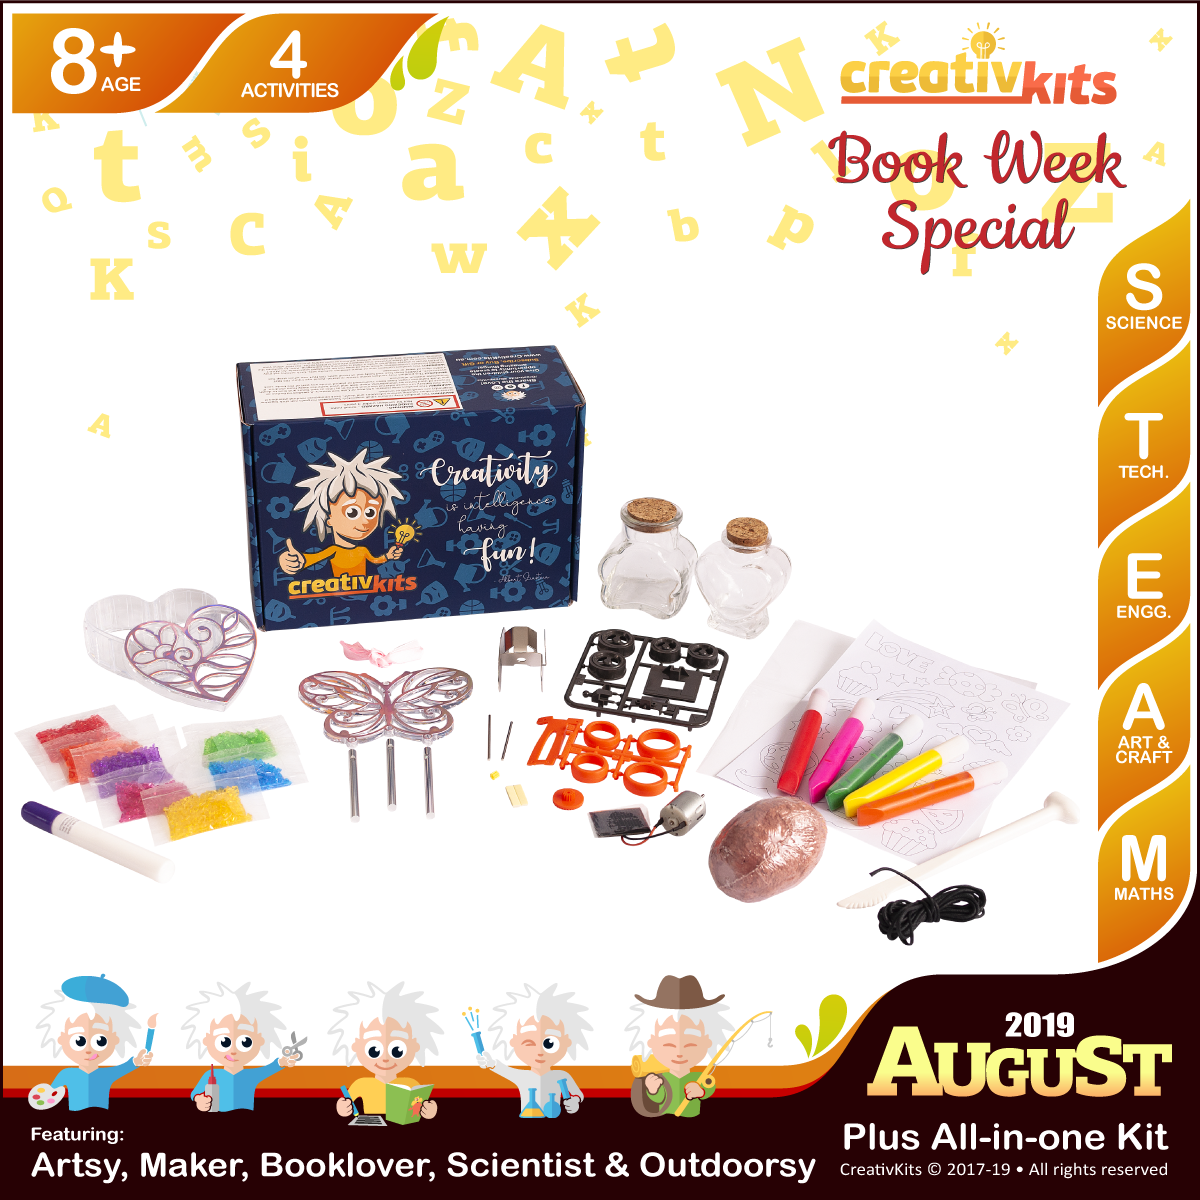 August Plus Kit • Age 8 plus • Solar Metal Racer, MYO Wind Chime & Trinket Box, Shark Tooth fossil and Sand Art Bottle Replicas